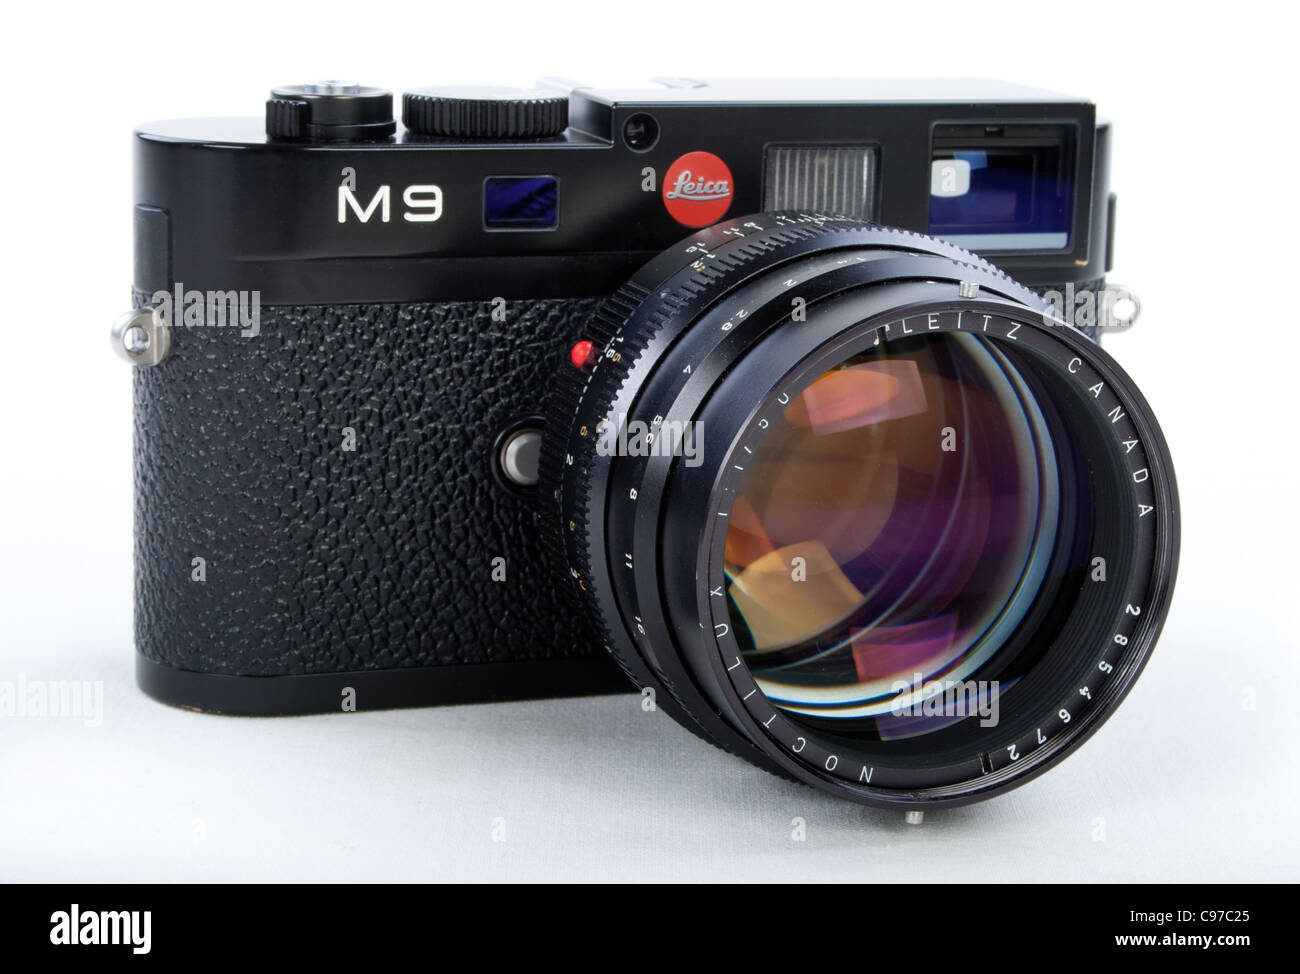 LEICA M9 Digital Rangefinder Camera Body with Noctilux f1 50mm Fast Lens - Stock Image